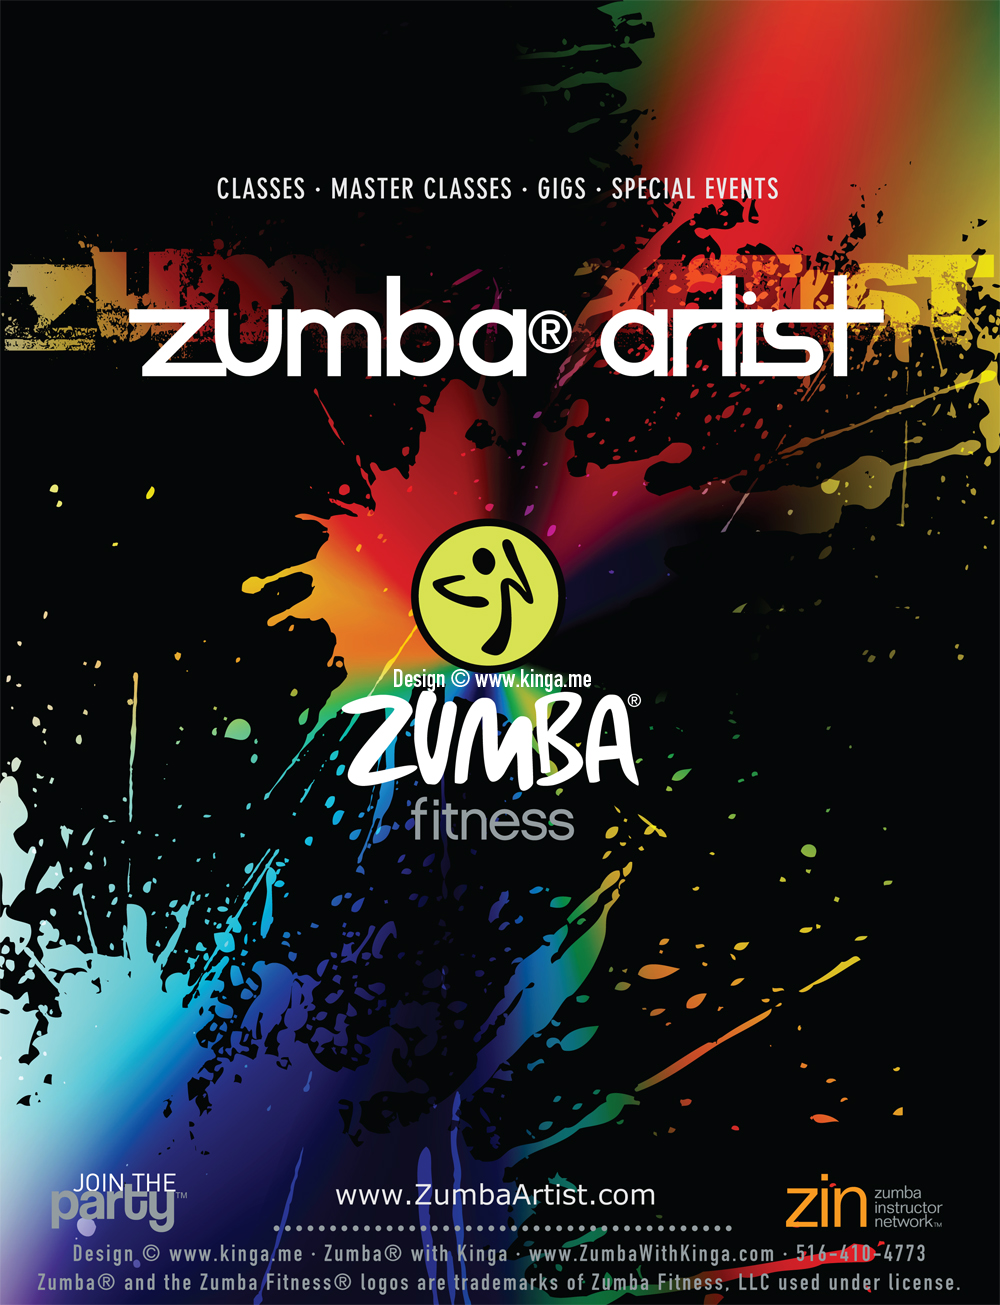 Zumba Artist - Long Island Zumba  - European American Artist Zumba Dancer Edina Kinga Agoston